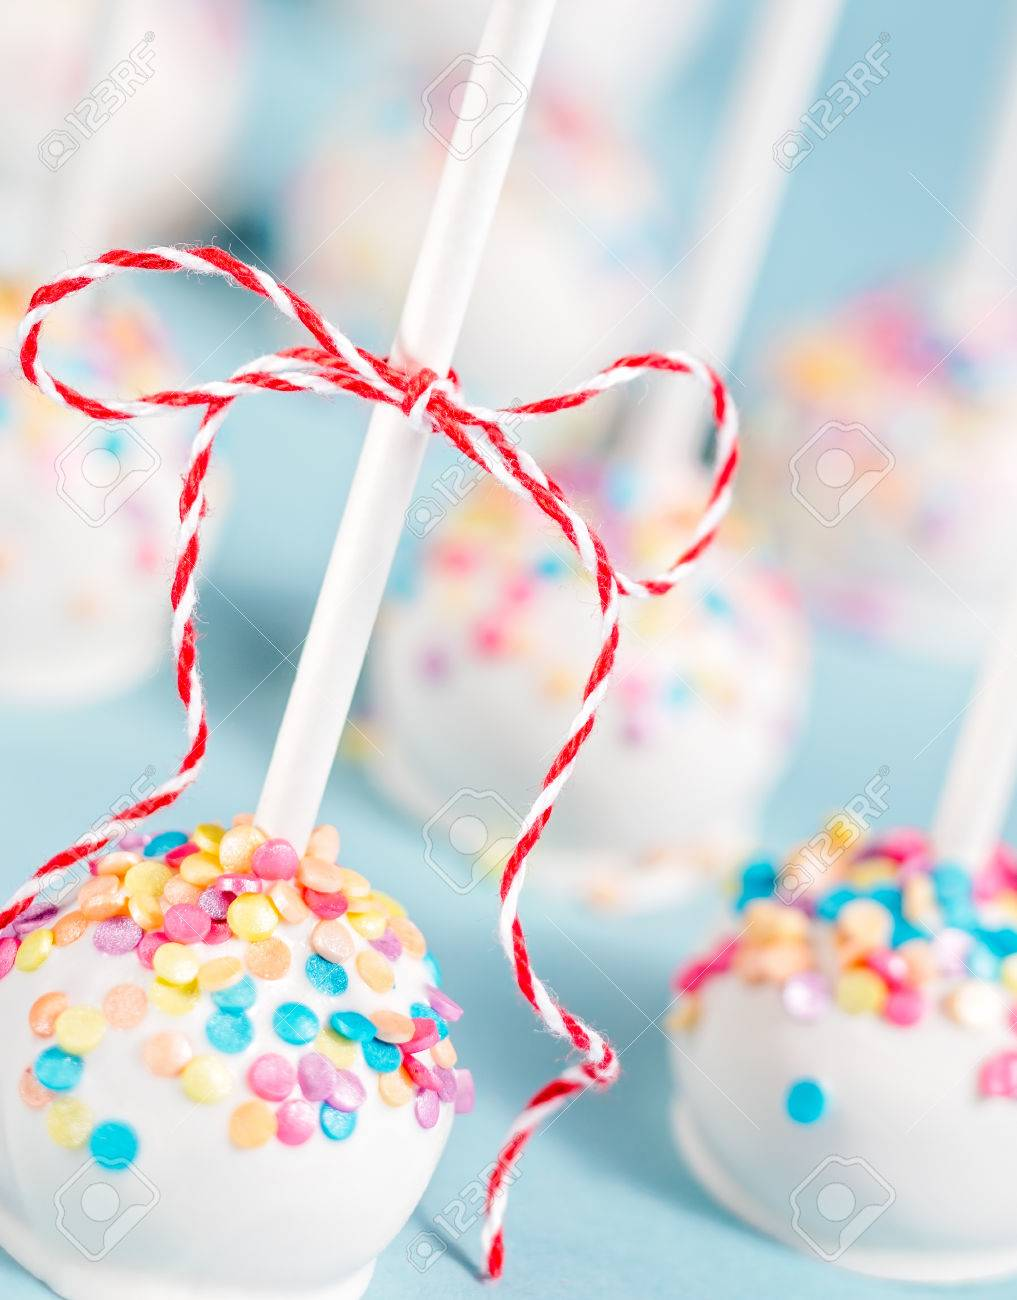 Vanilla Cake Pops With Colorful Sprinkles And Red Bow Over A Stock